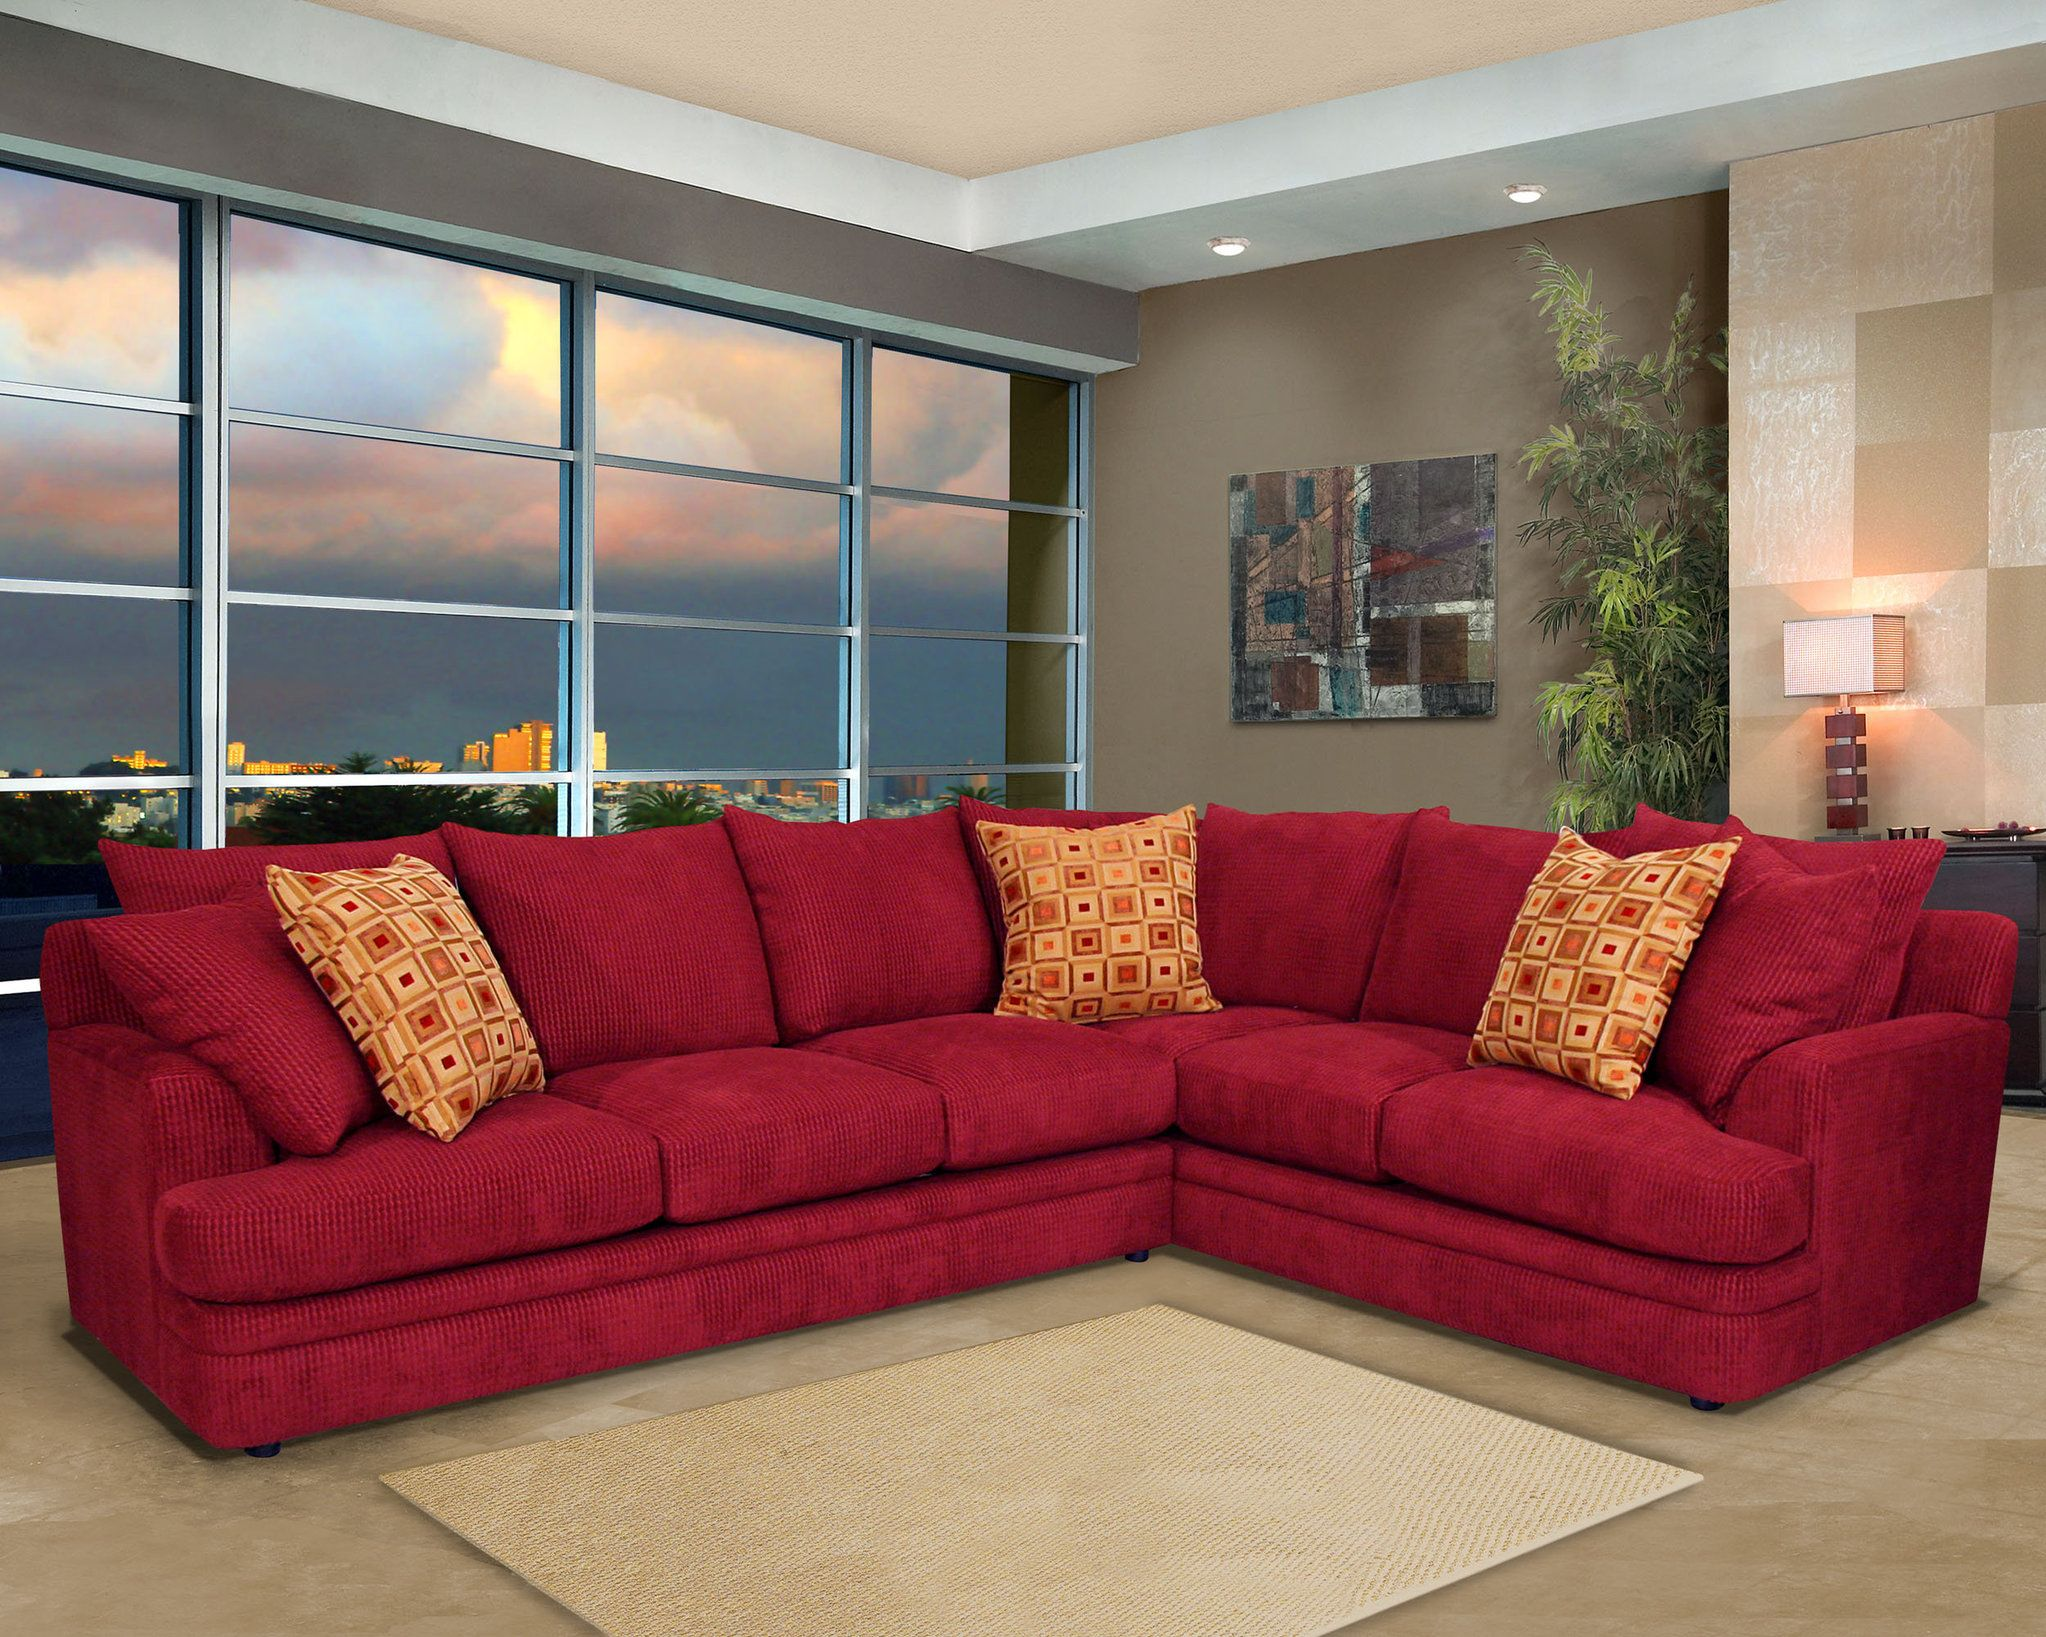 Furniture Trendy Red Style Living Room Sectionals Sofa Design With L Shaped And Cute Cushion Beautiful For Best